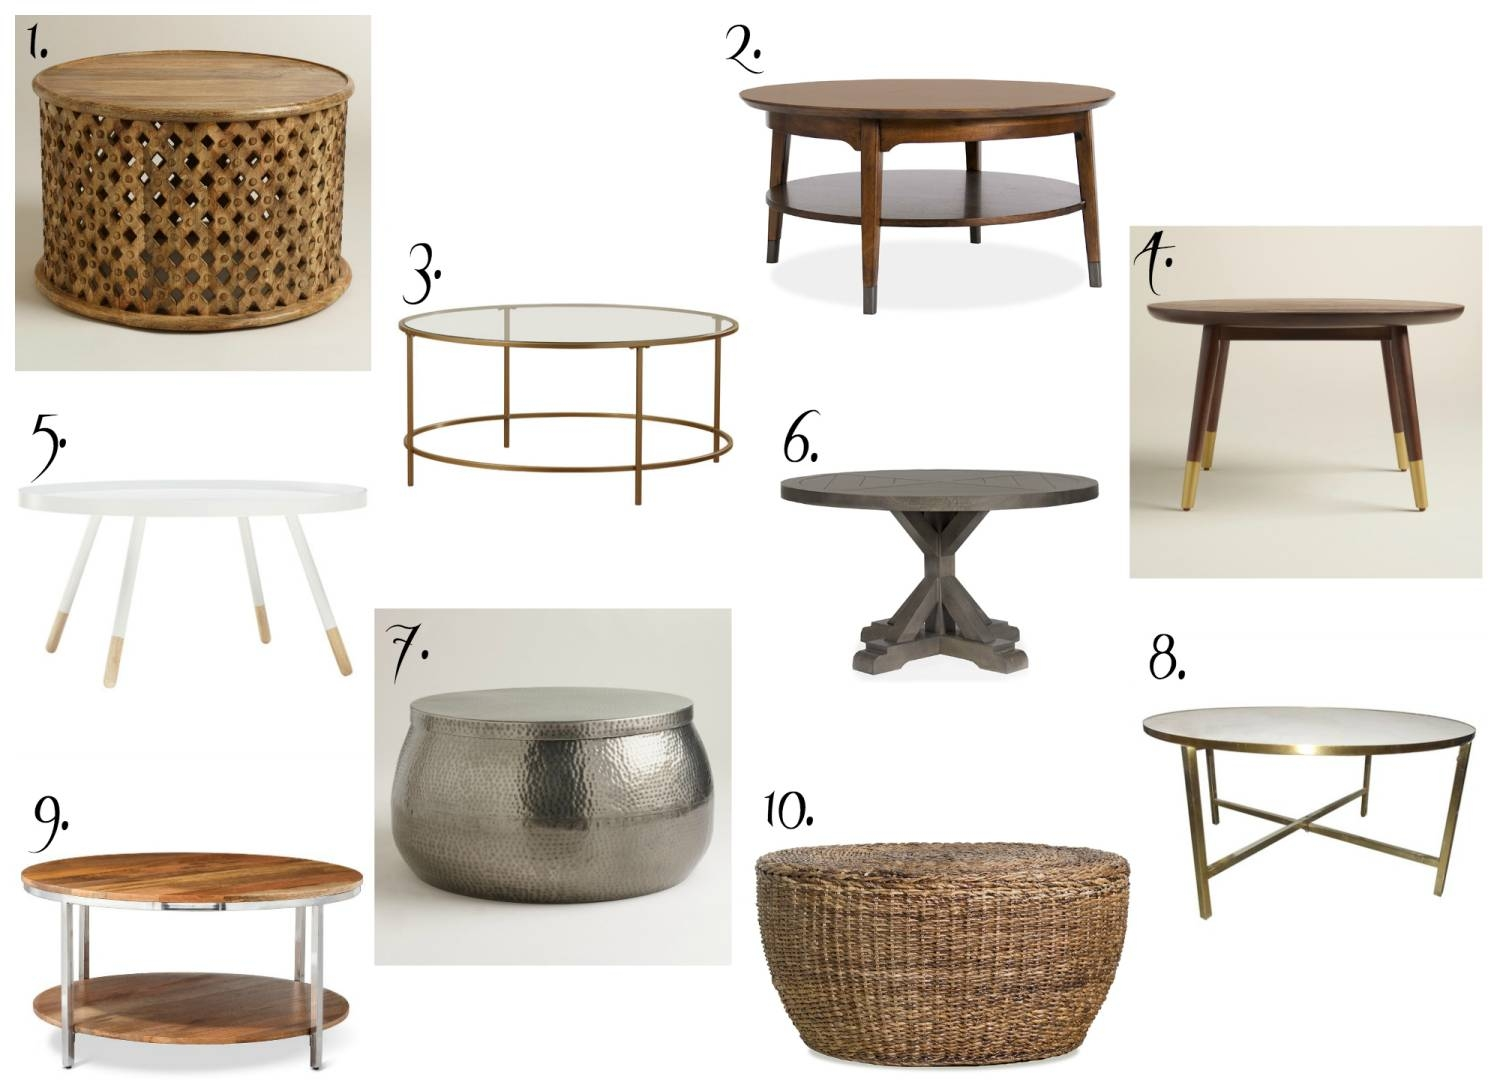 Affordable Round Coffee Tables - The Chronicles Of Home inside Round Woven Coffee Tables (Image 2 of 30)